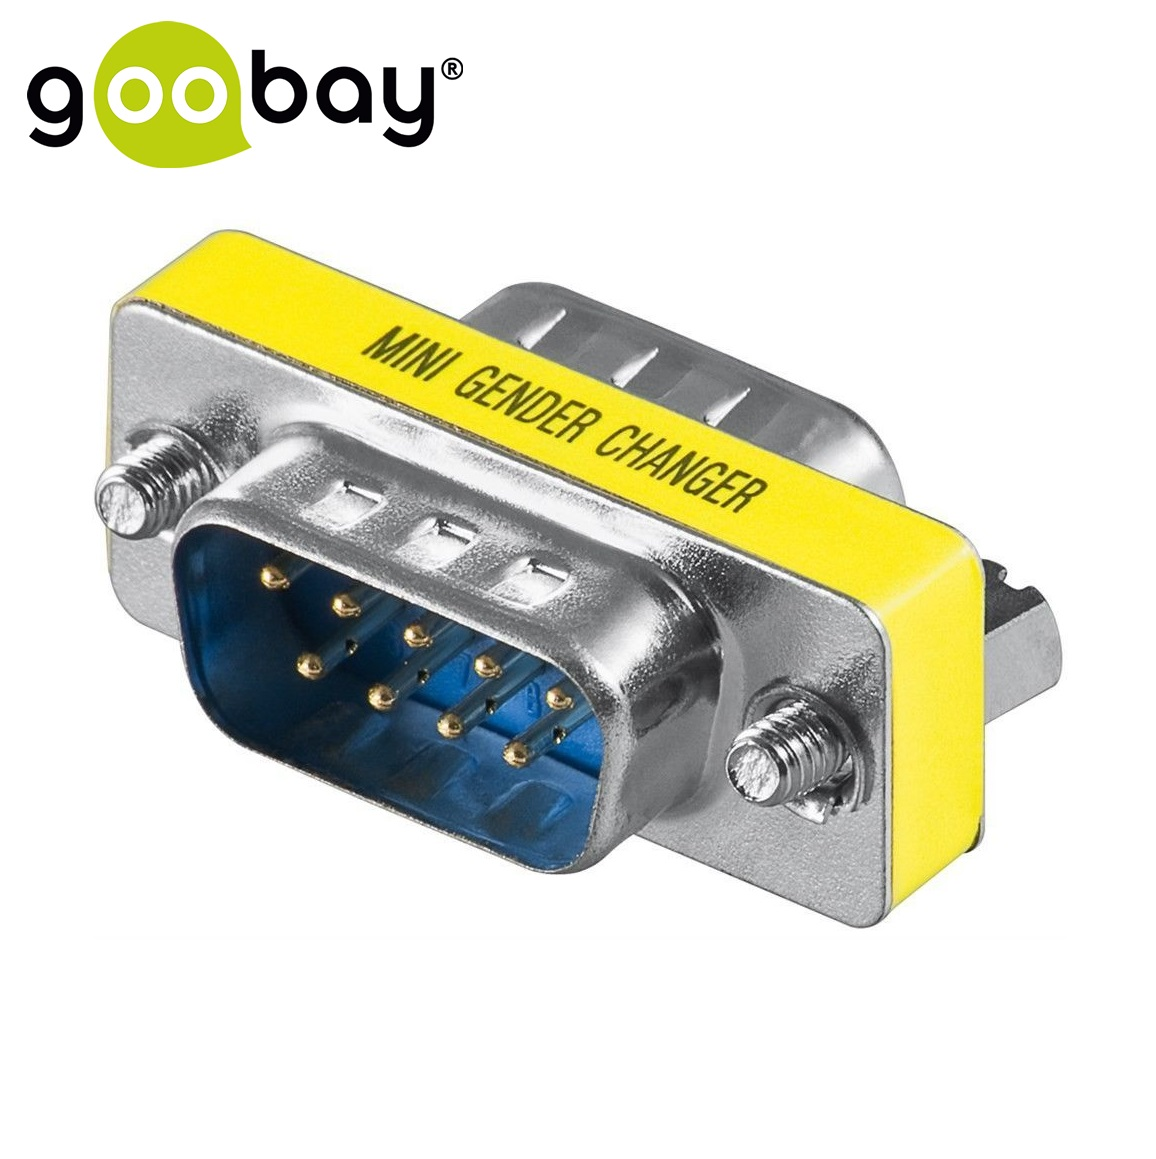 RS-232 male 9-pin to RS-232 male 9-pin GOOBAY